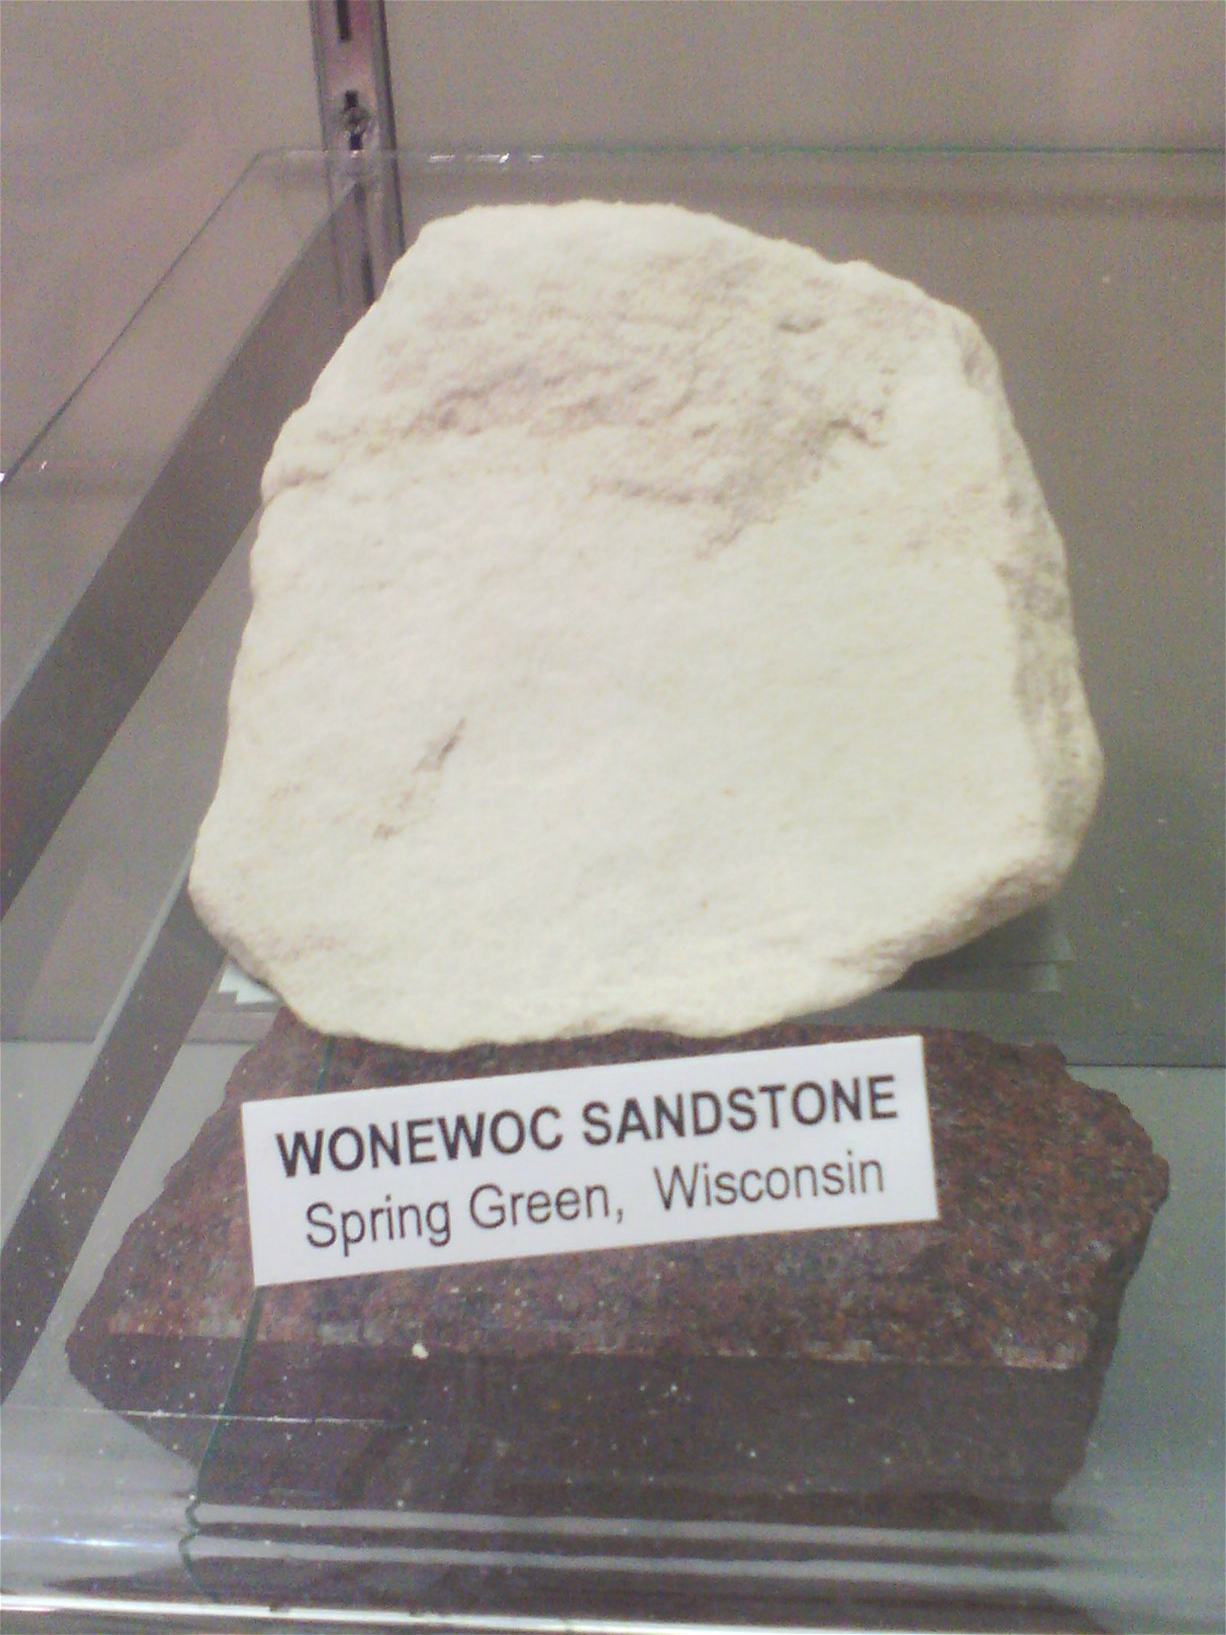 A sample piece of wonewoc sandstone found in Spring Green, Wisconsin